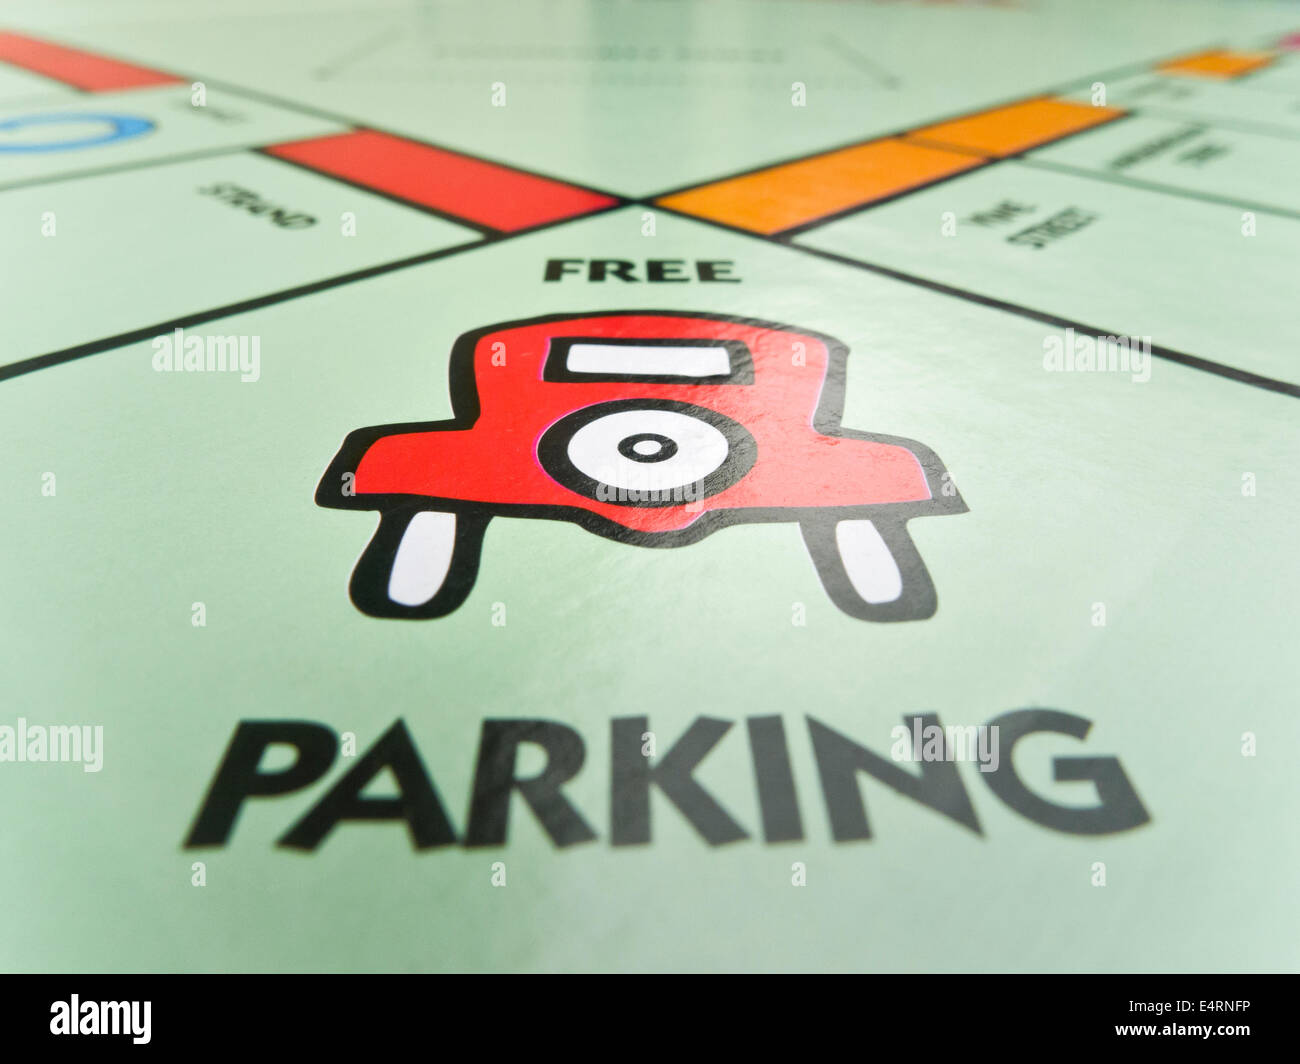 'FREE PARKING' square on the Monopoly board. - Stock Image